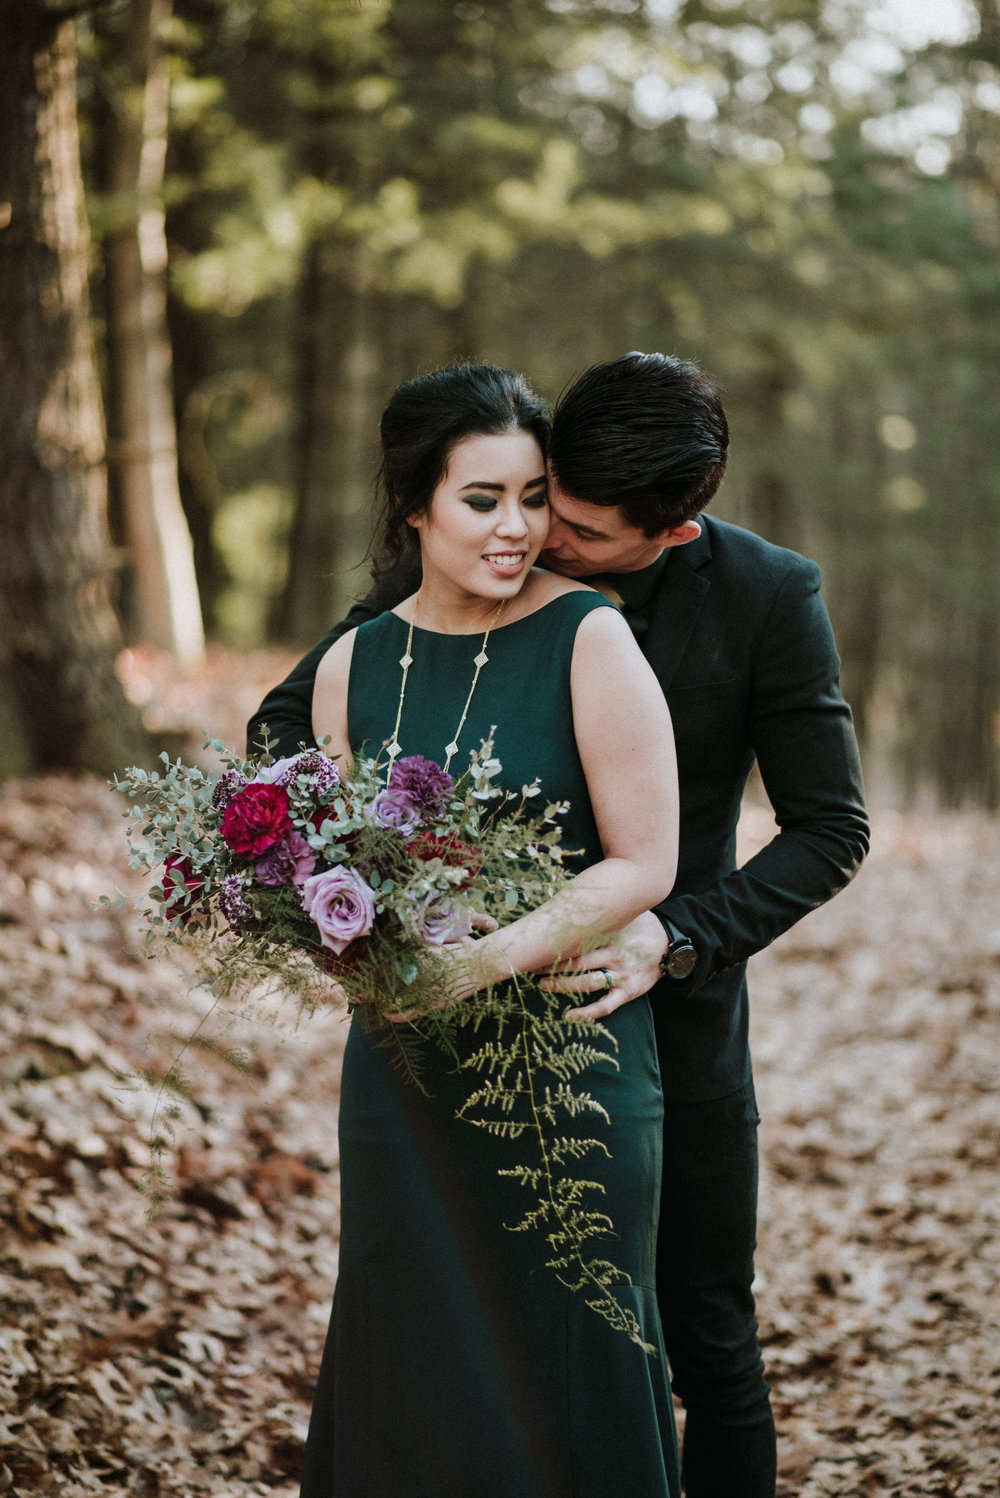 Woodland-Elopement-Ohio-73.jpg